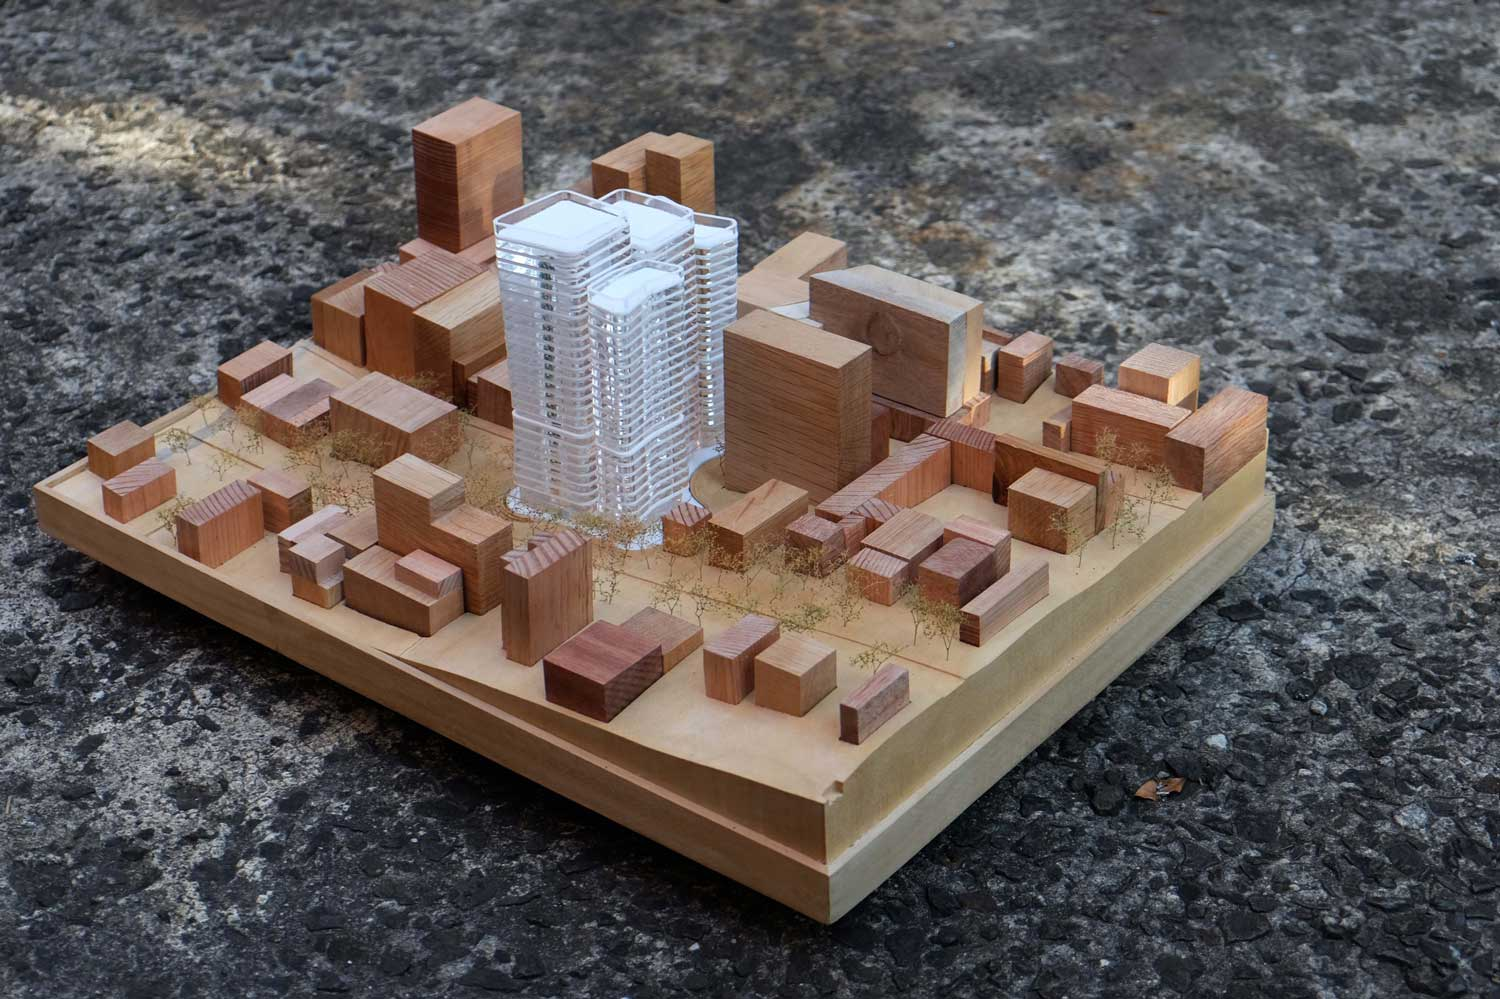 Woods Bagot Architecture model by Make Models | Yellowtrace